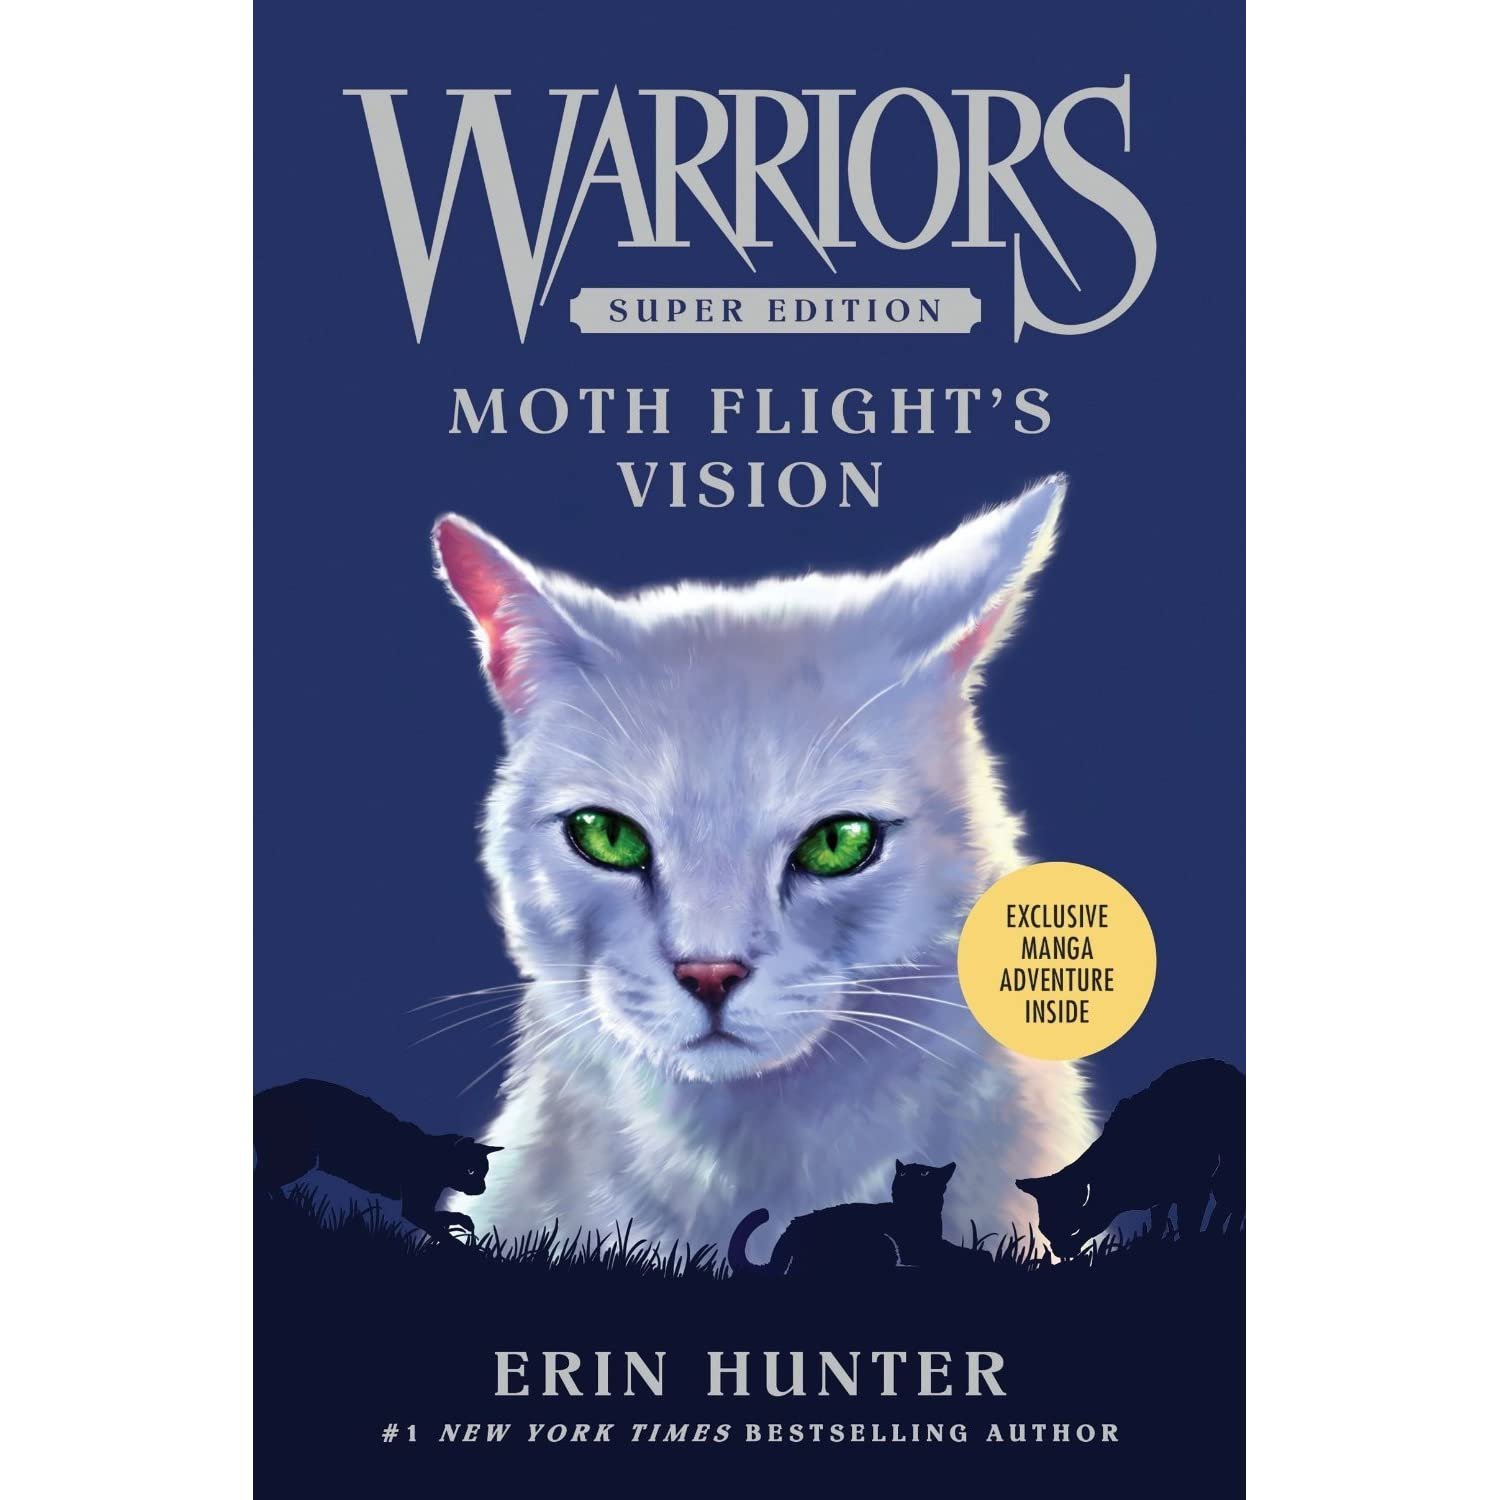 Warriors Erin Hunter Book Review: Moth Flight's Vision (Warriors Super Edition #8) By Erin